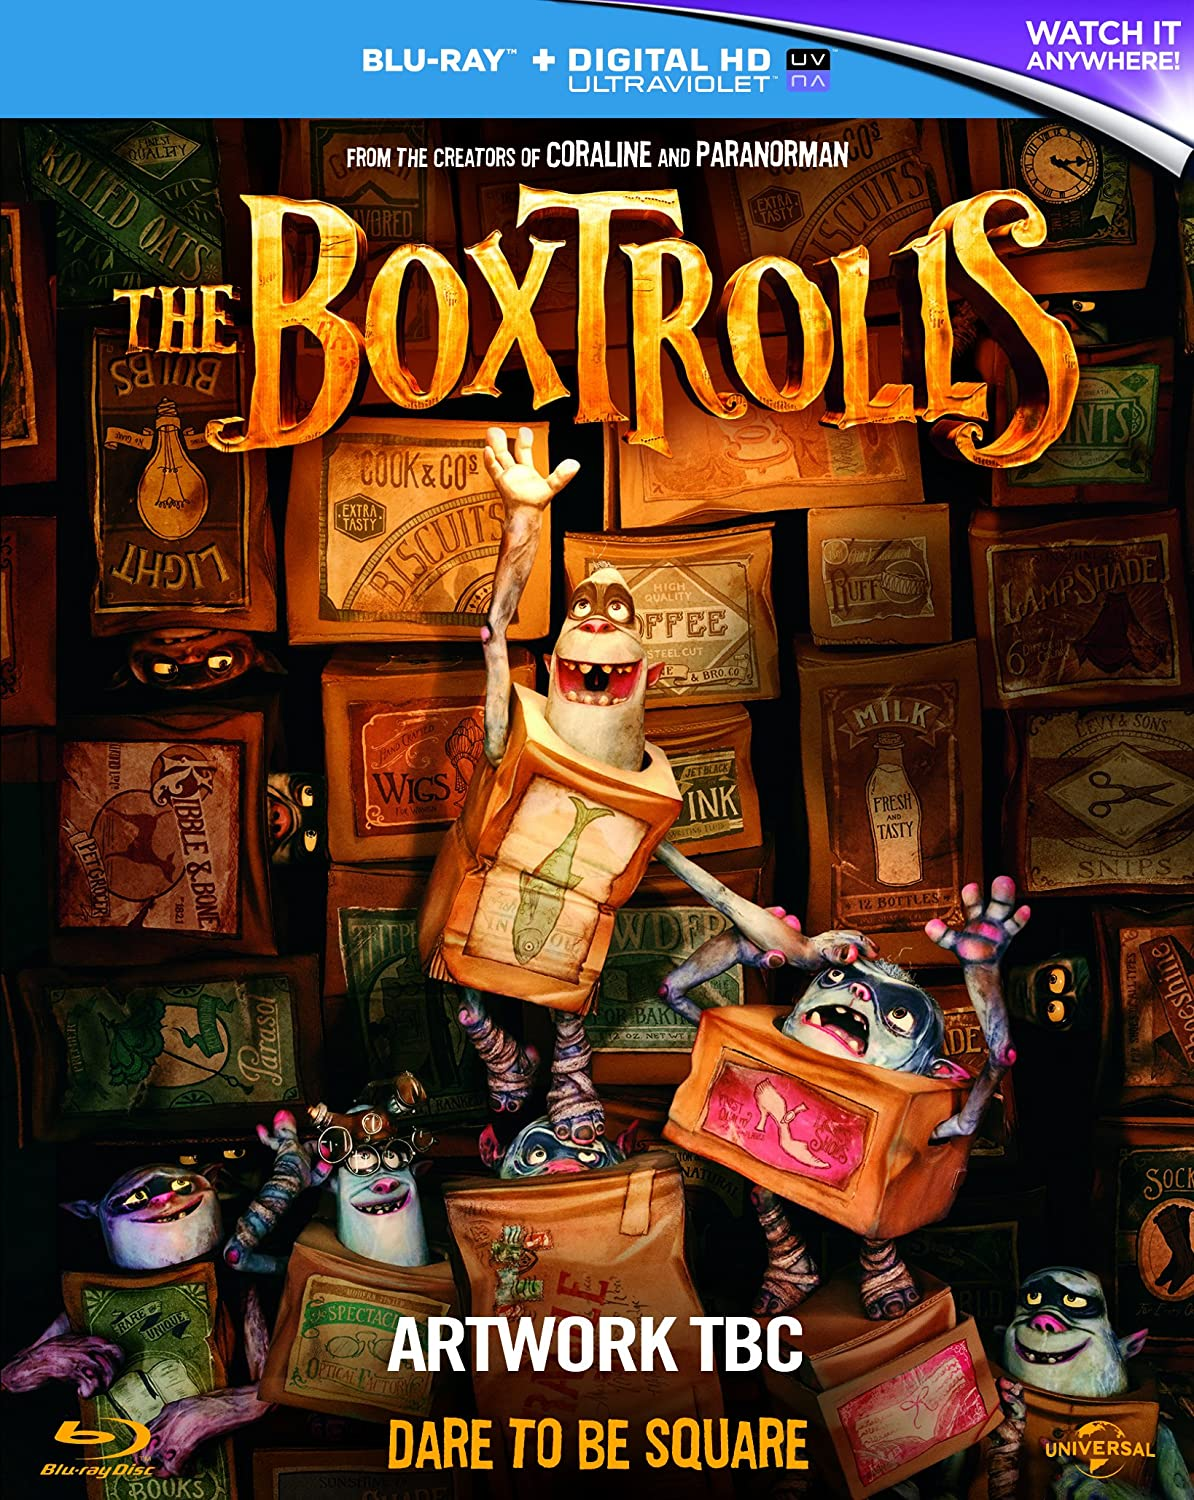 The Boxtrolls (2014)  Fantasy | Adventure (BLURAY)